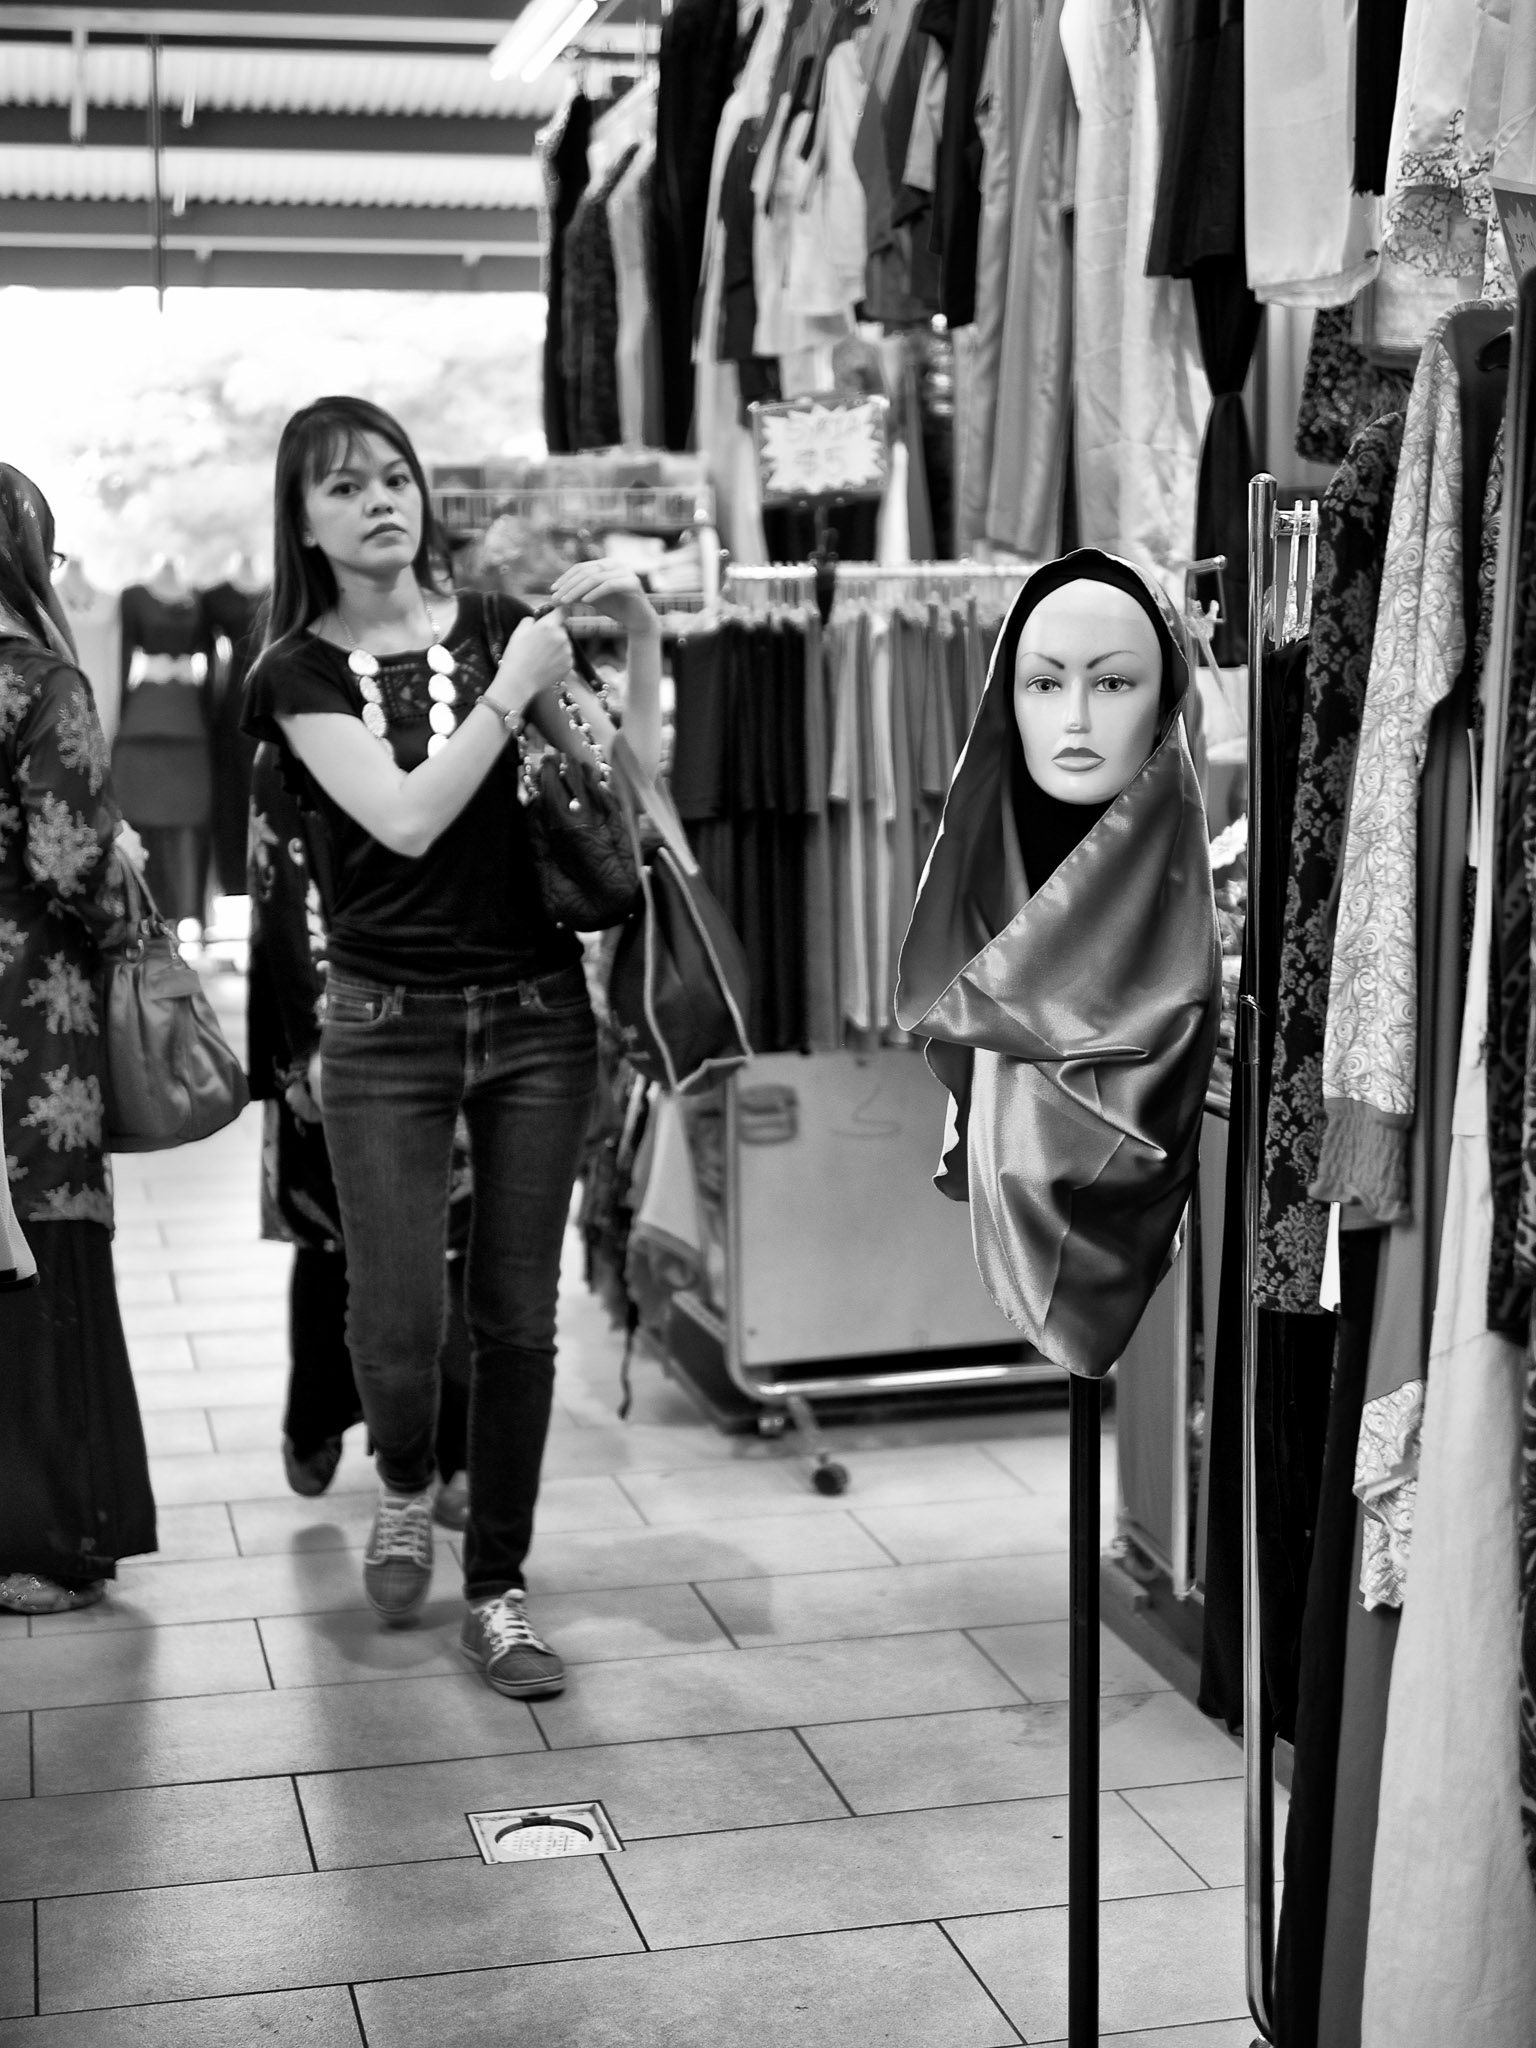 A mannequin face in the shopping corridor, Geylang Serai Market, Singapore